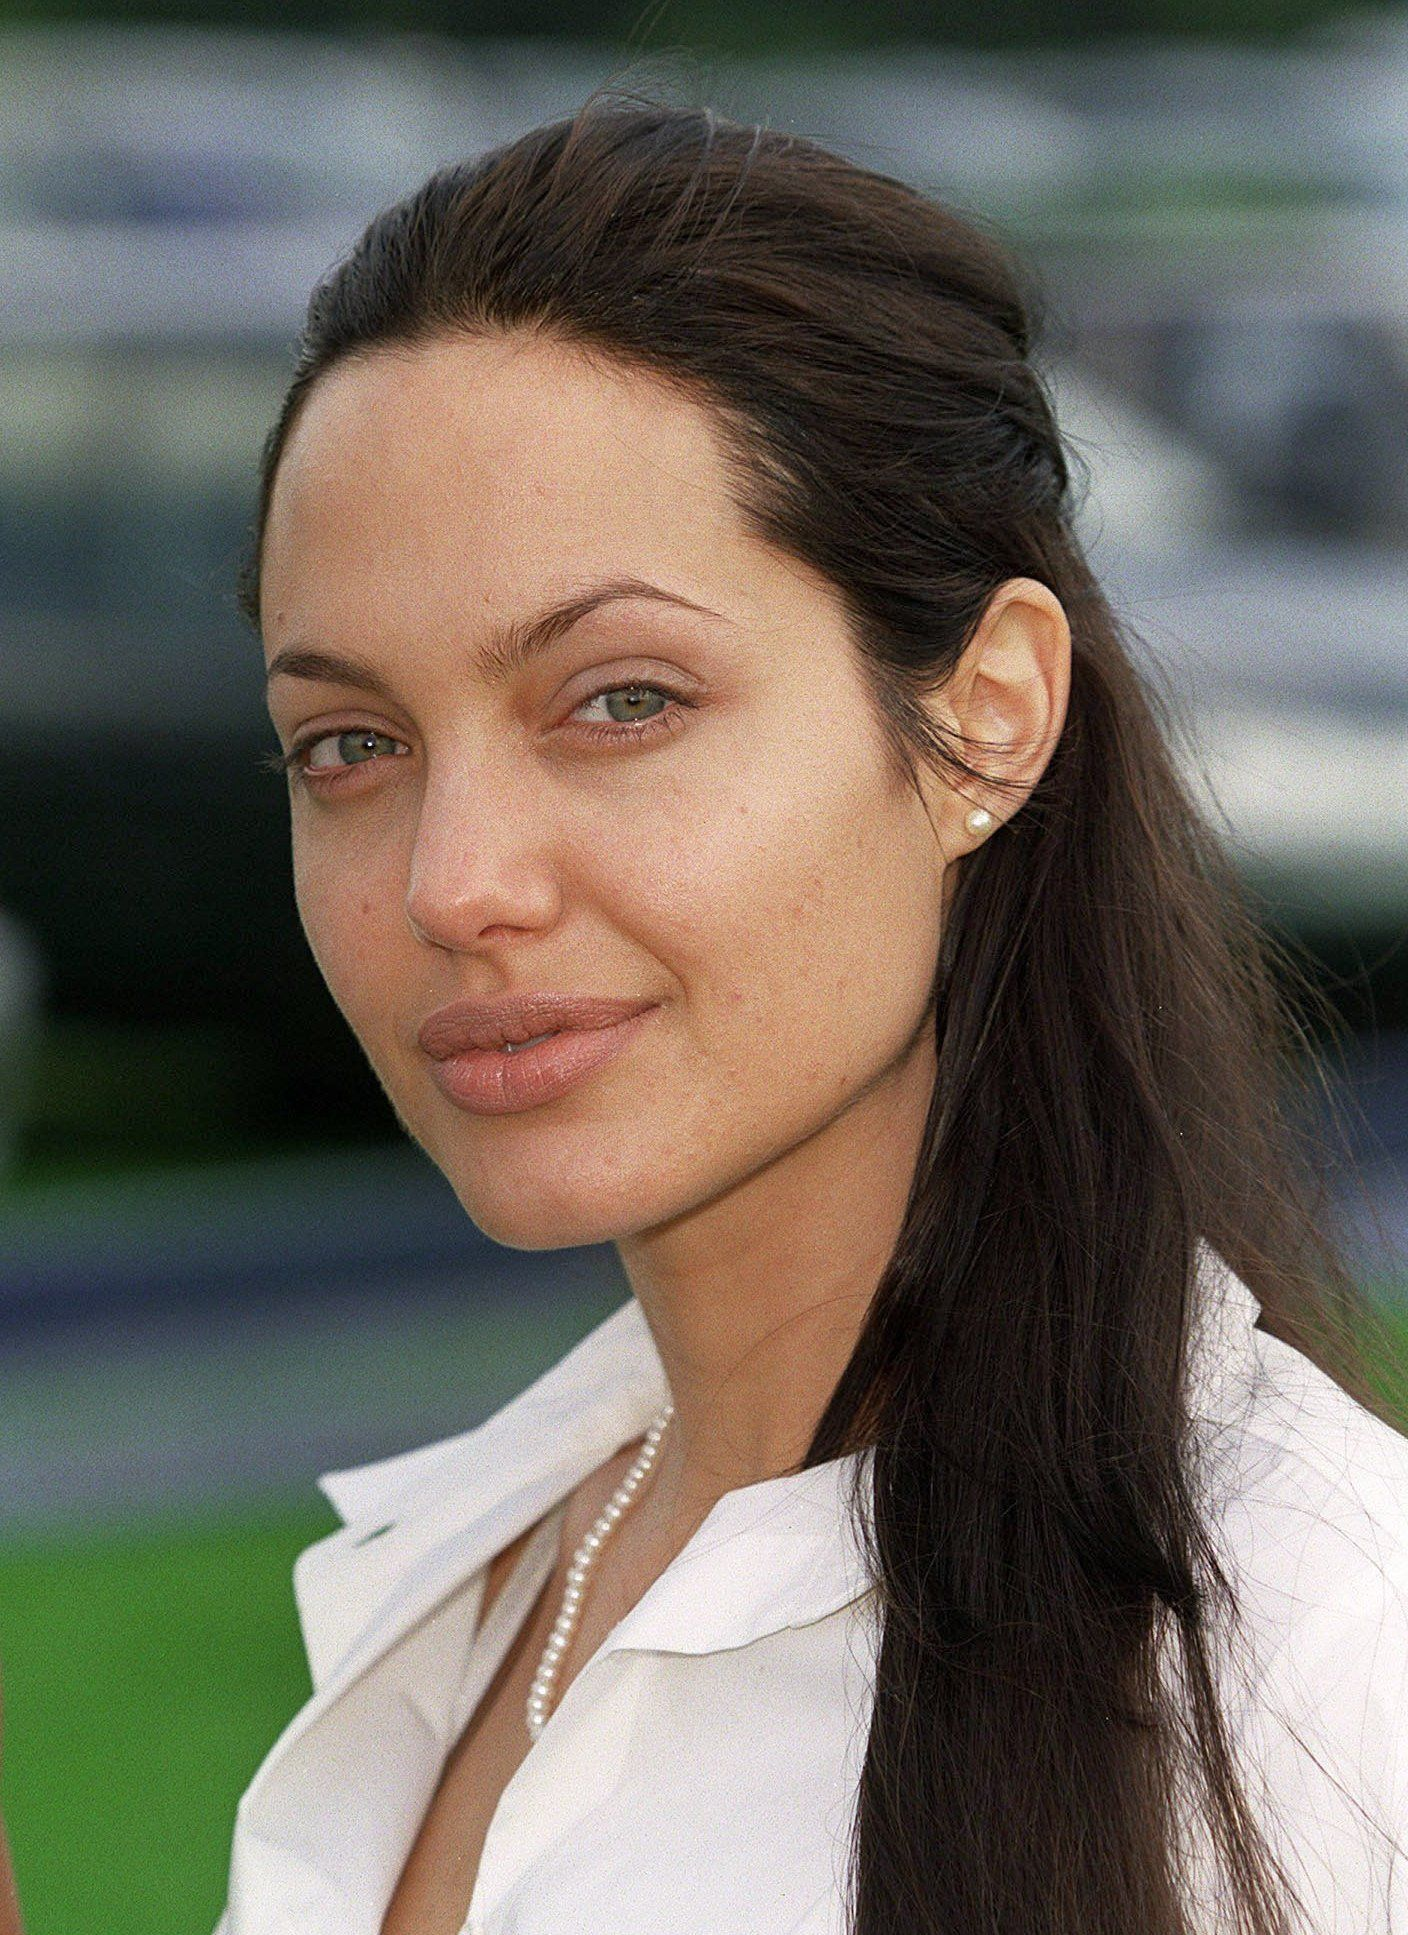 http://www2.pictures.stylebistro.com/gi/Angelina+Jolie+Makeup+Lipgloss+1Aad4Yk0vn5l.jpg